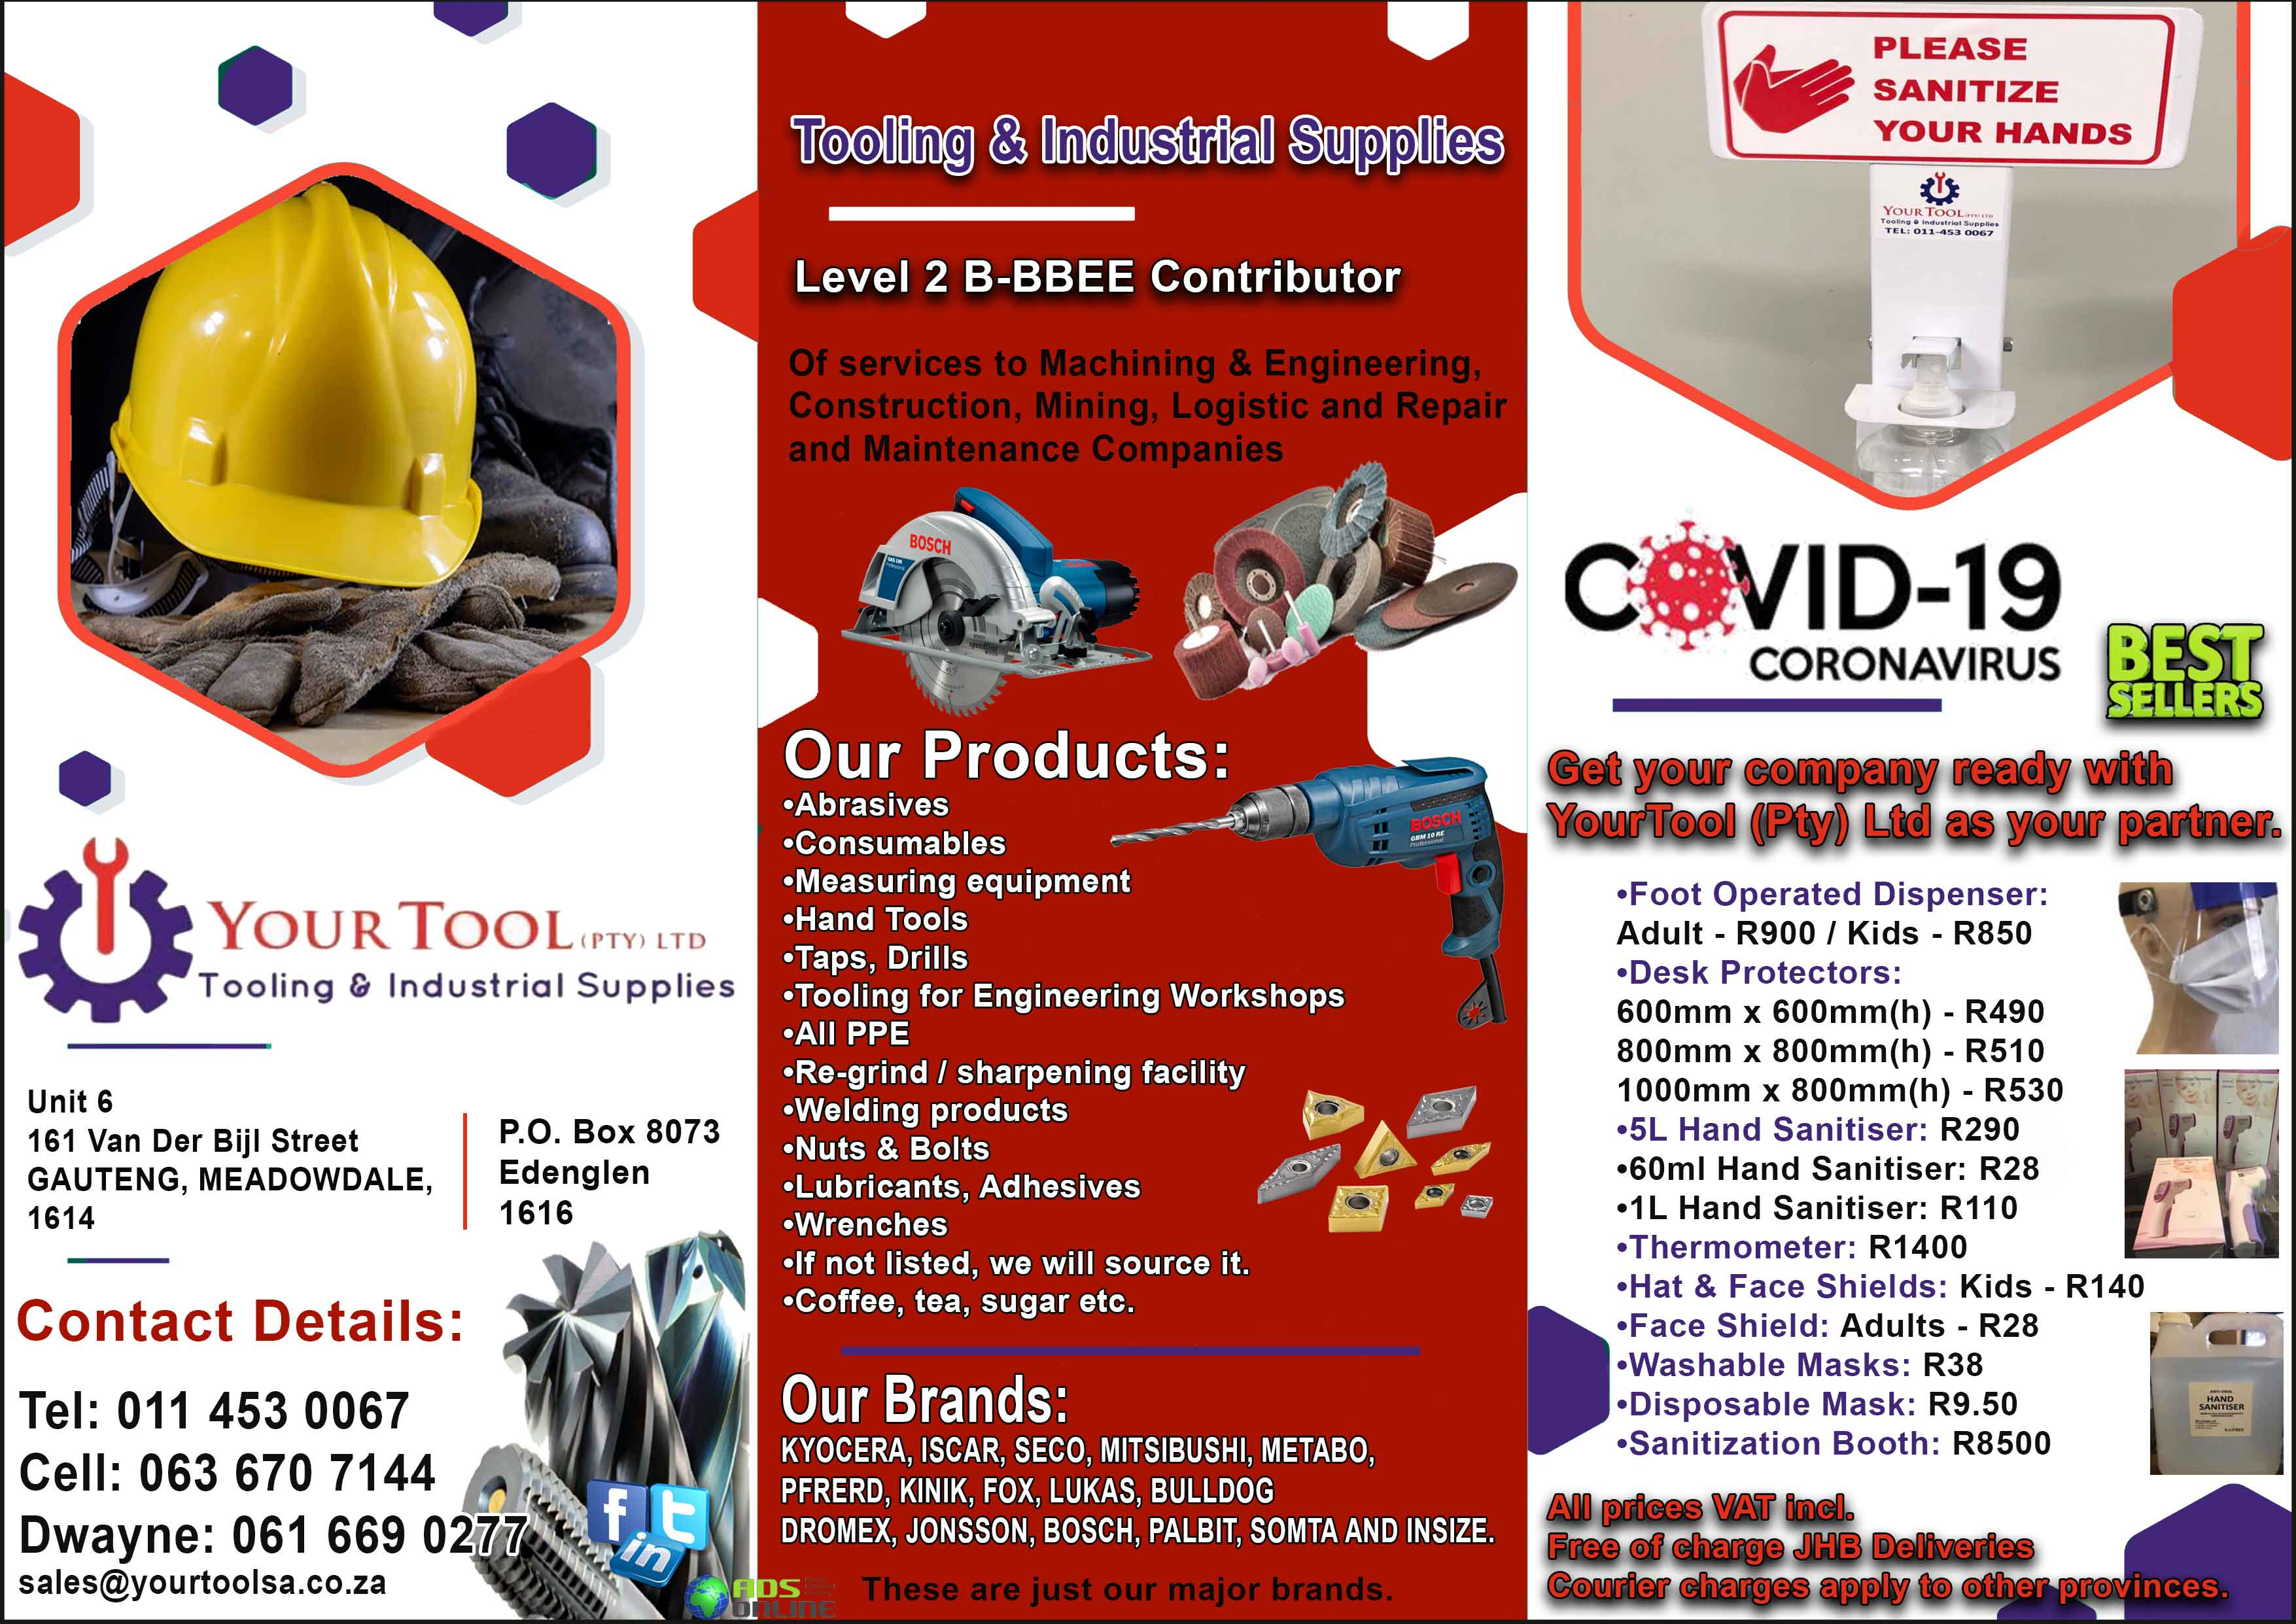 Your Tool (Pty) Ltd – Tooling & Industrial Supplies | Gauteng, Meadowdale